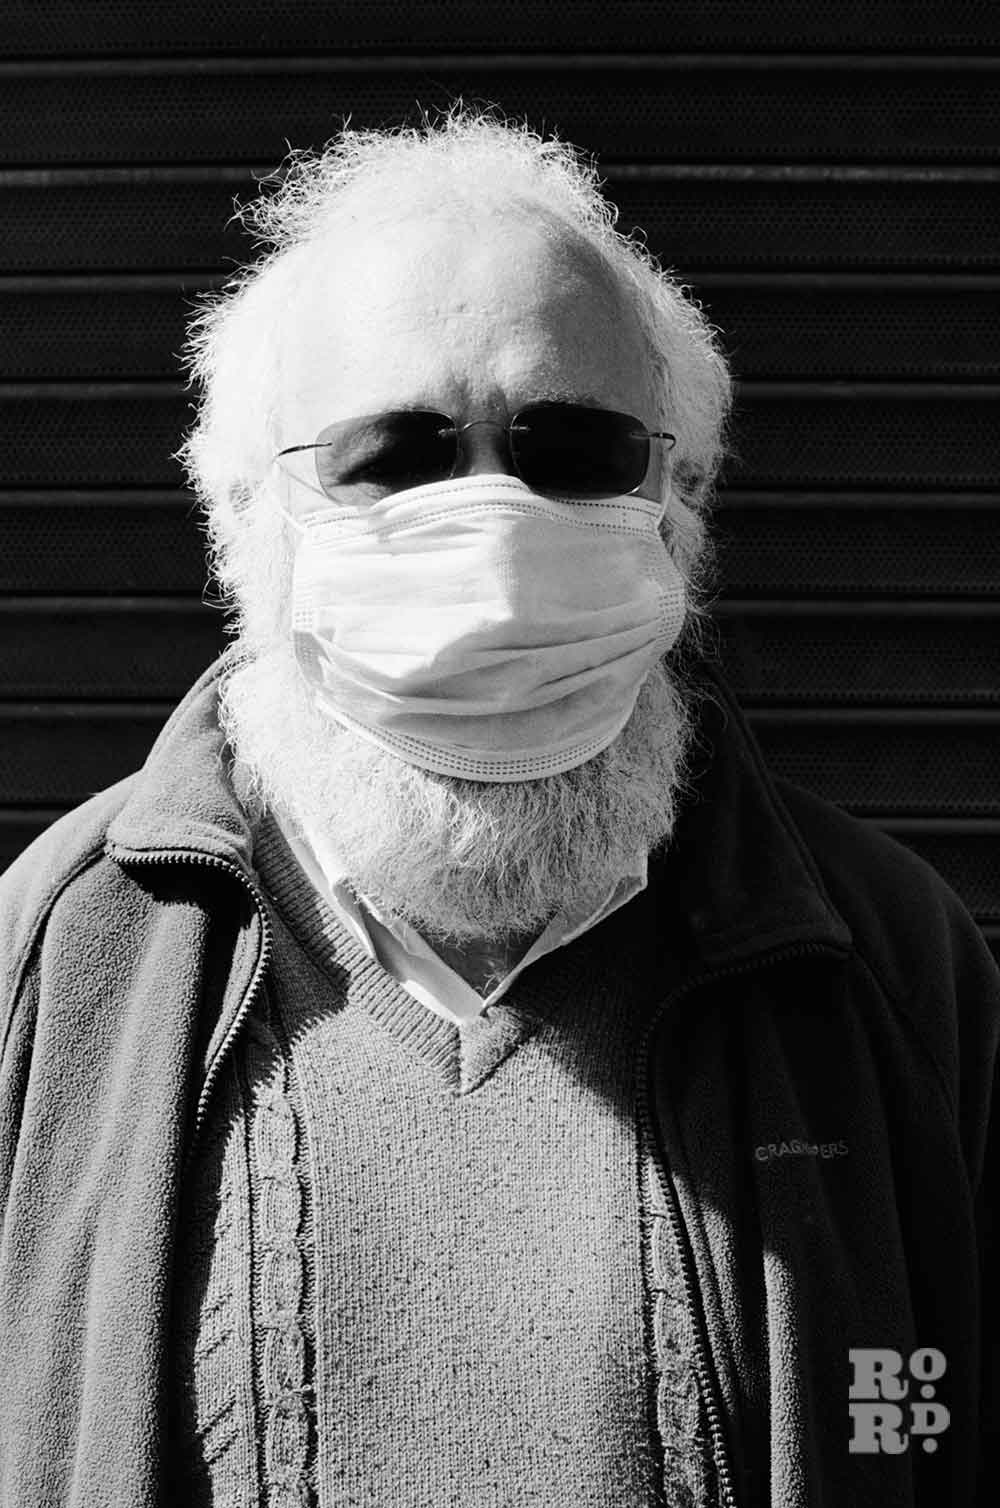 Man with large beard wears face mask during covid-19 pandemic